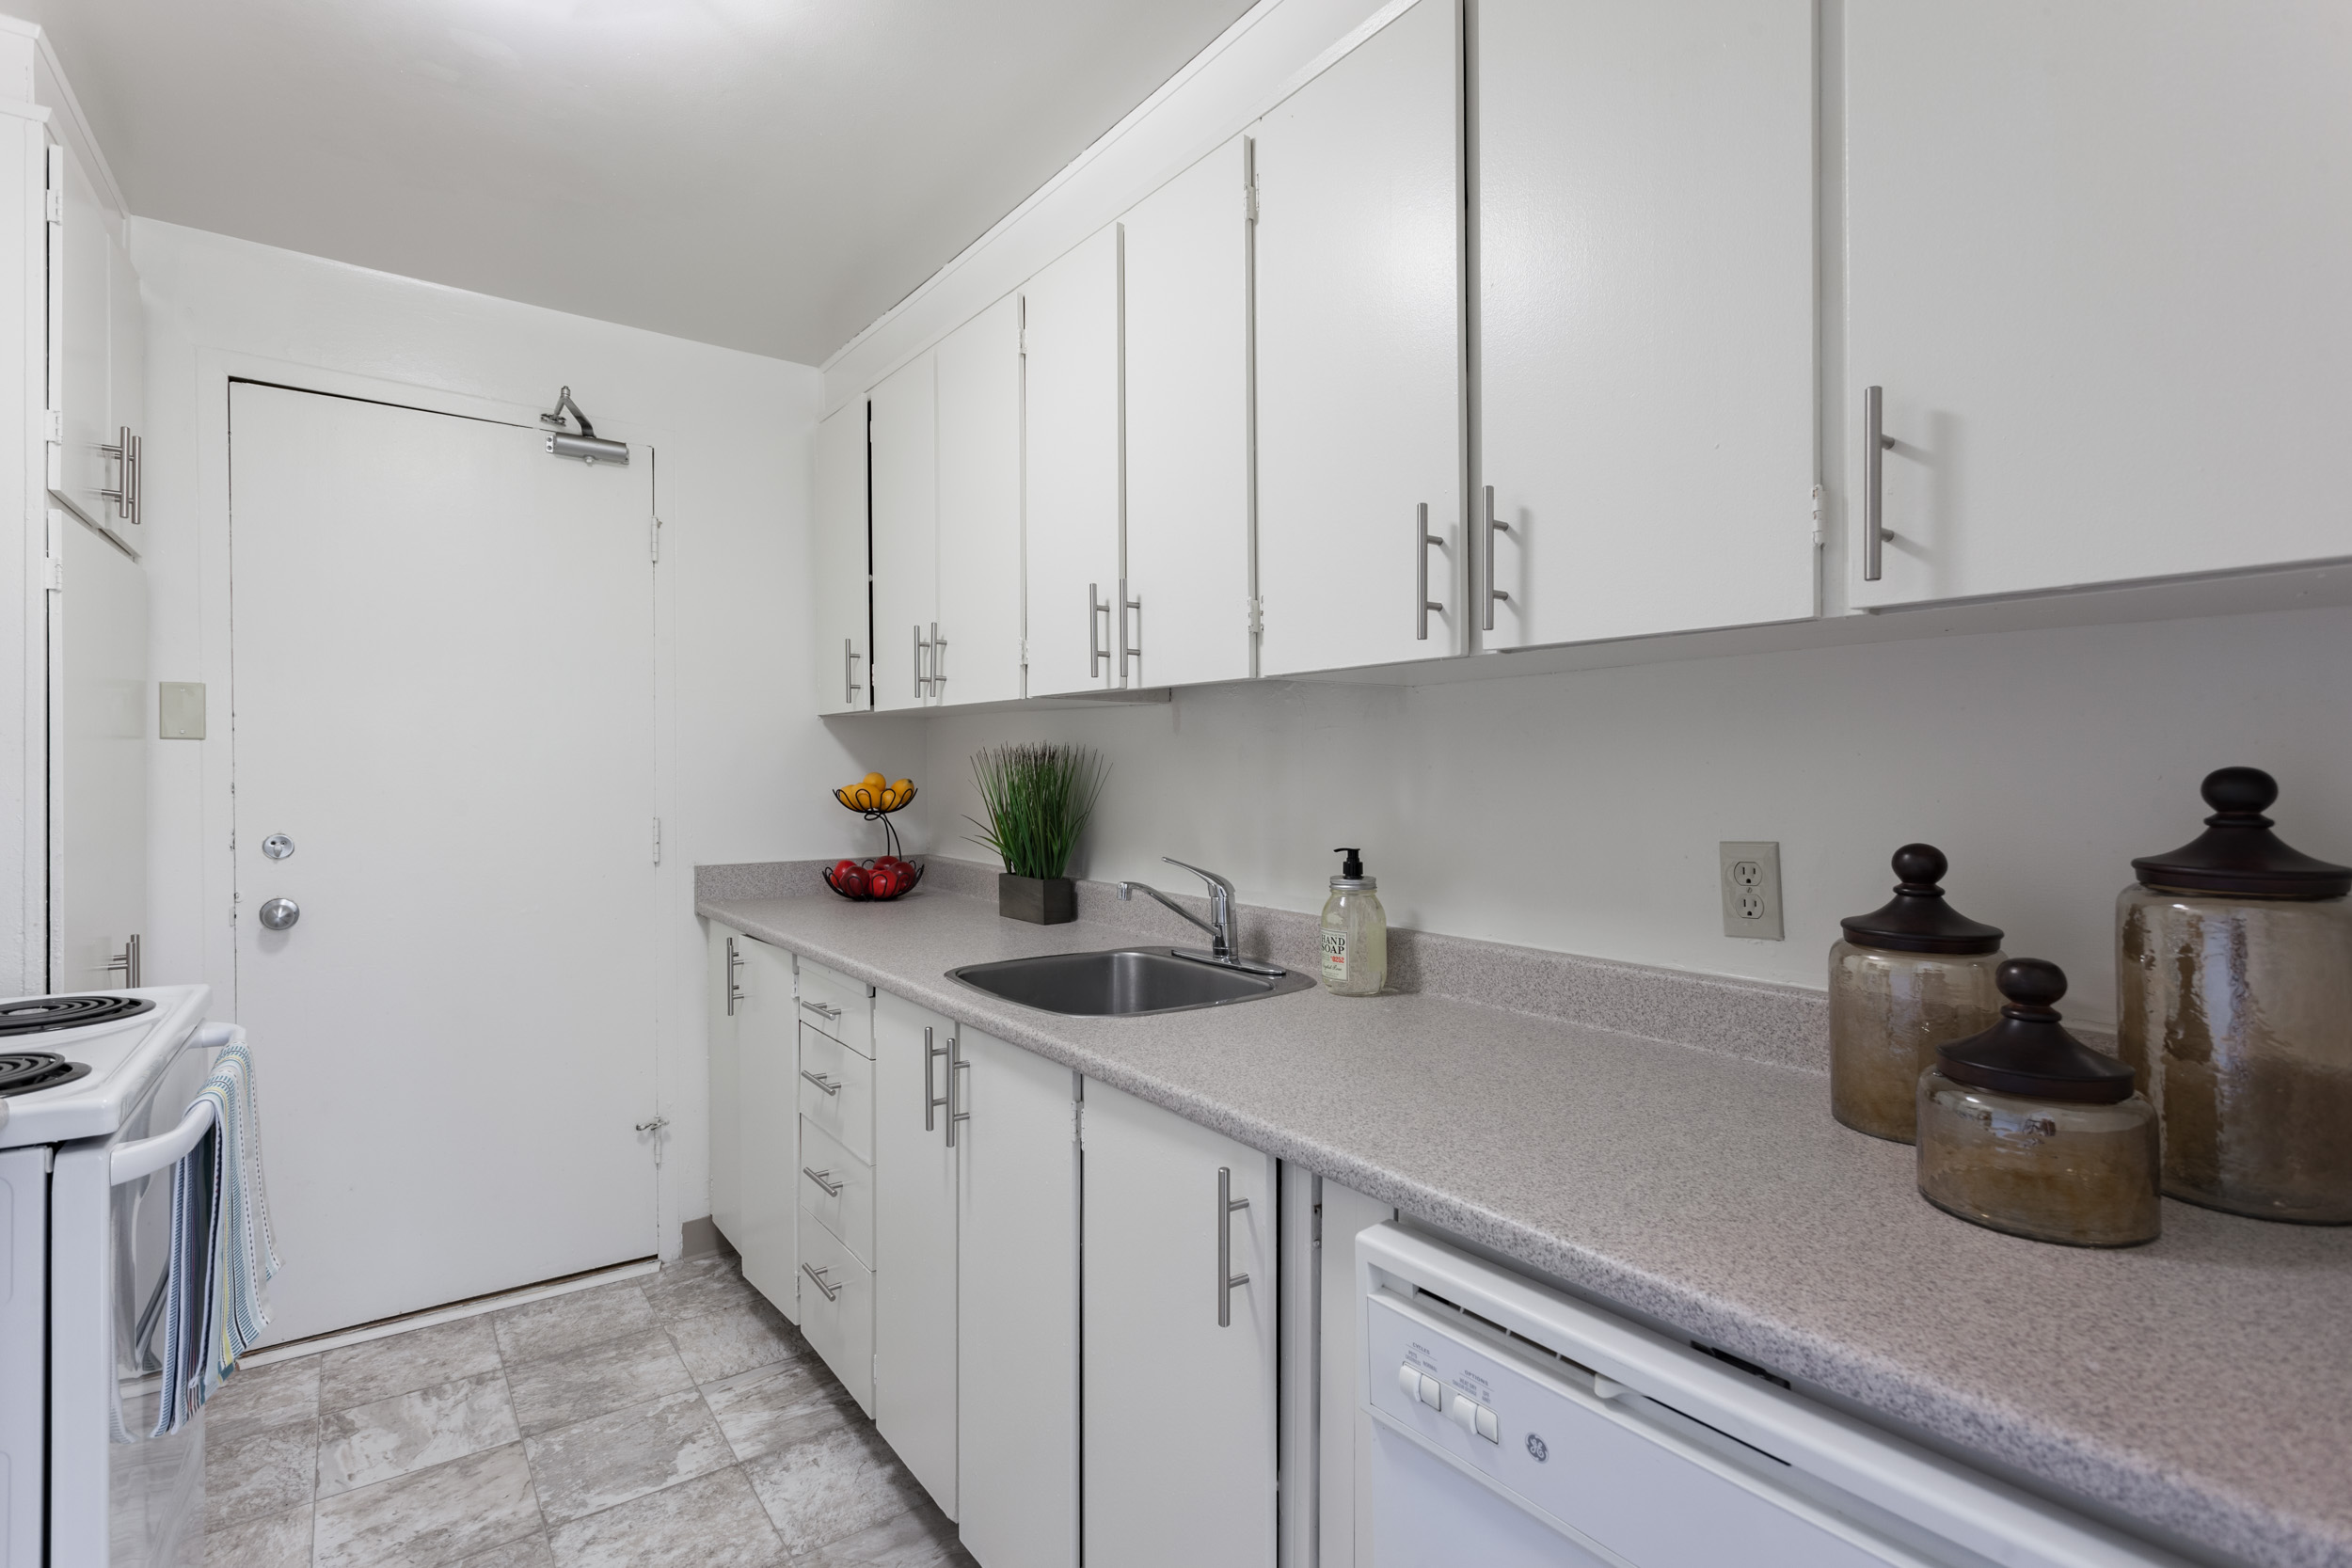 1 bedroom Apartments for rent in Ottawa at Faircrest - Photo 04 - RentersPages – L401056